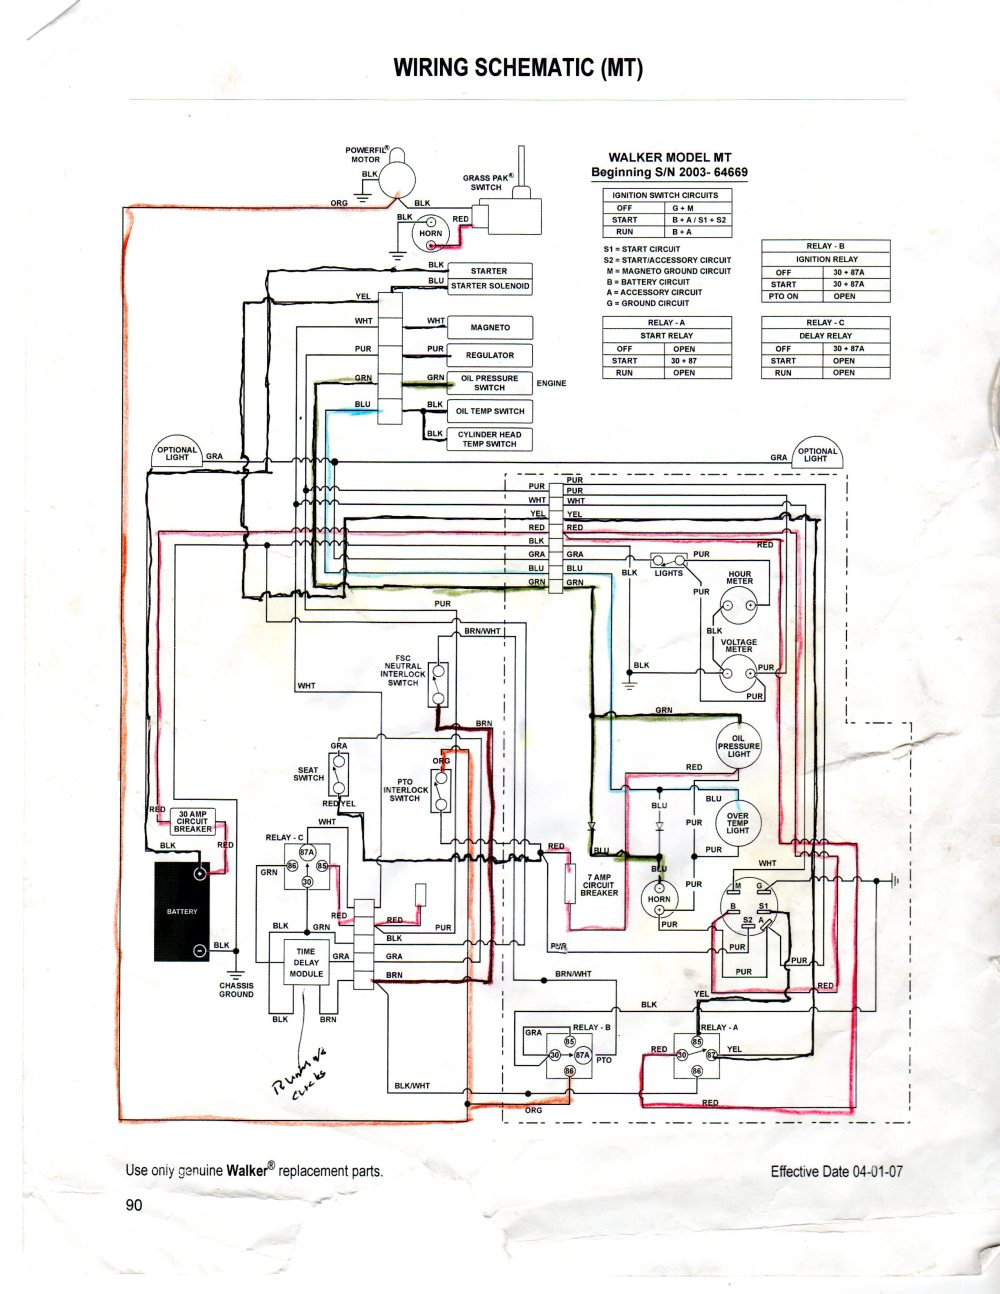 medium resolution of  2013 03 23 021910 img005 wiring diagram for cub cadet zero turn the wiring diagram cub cadet ltx